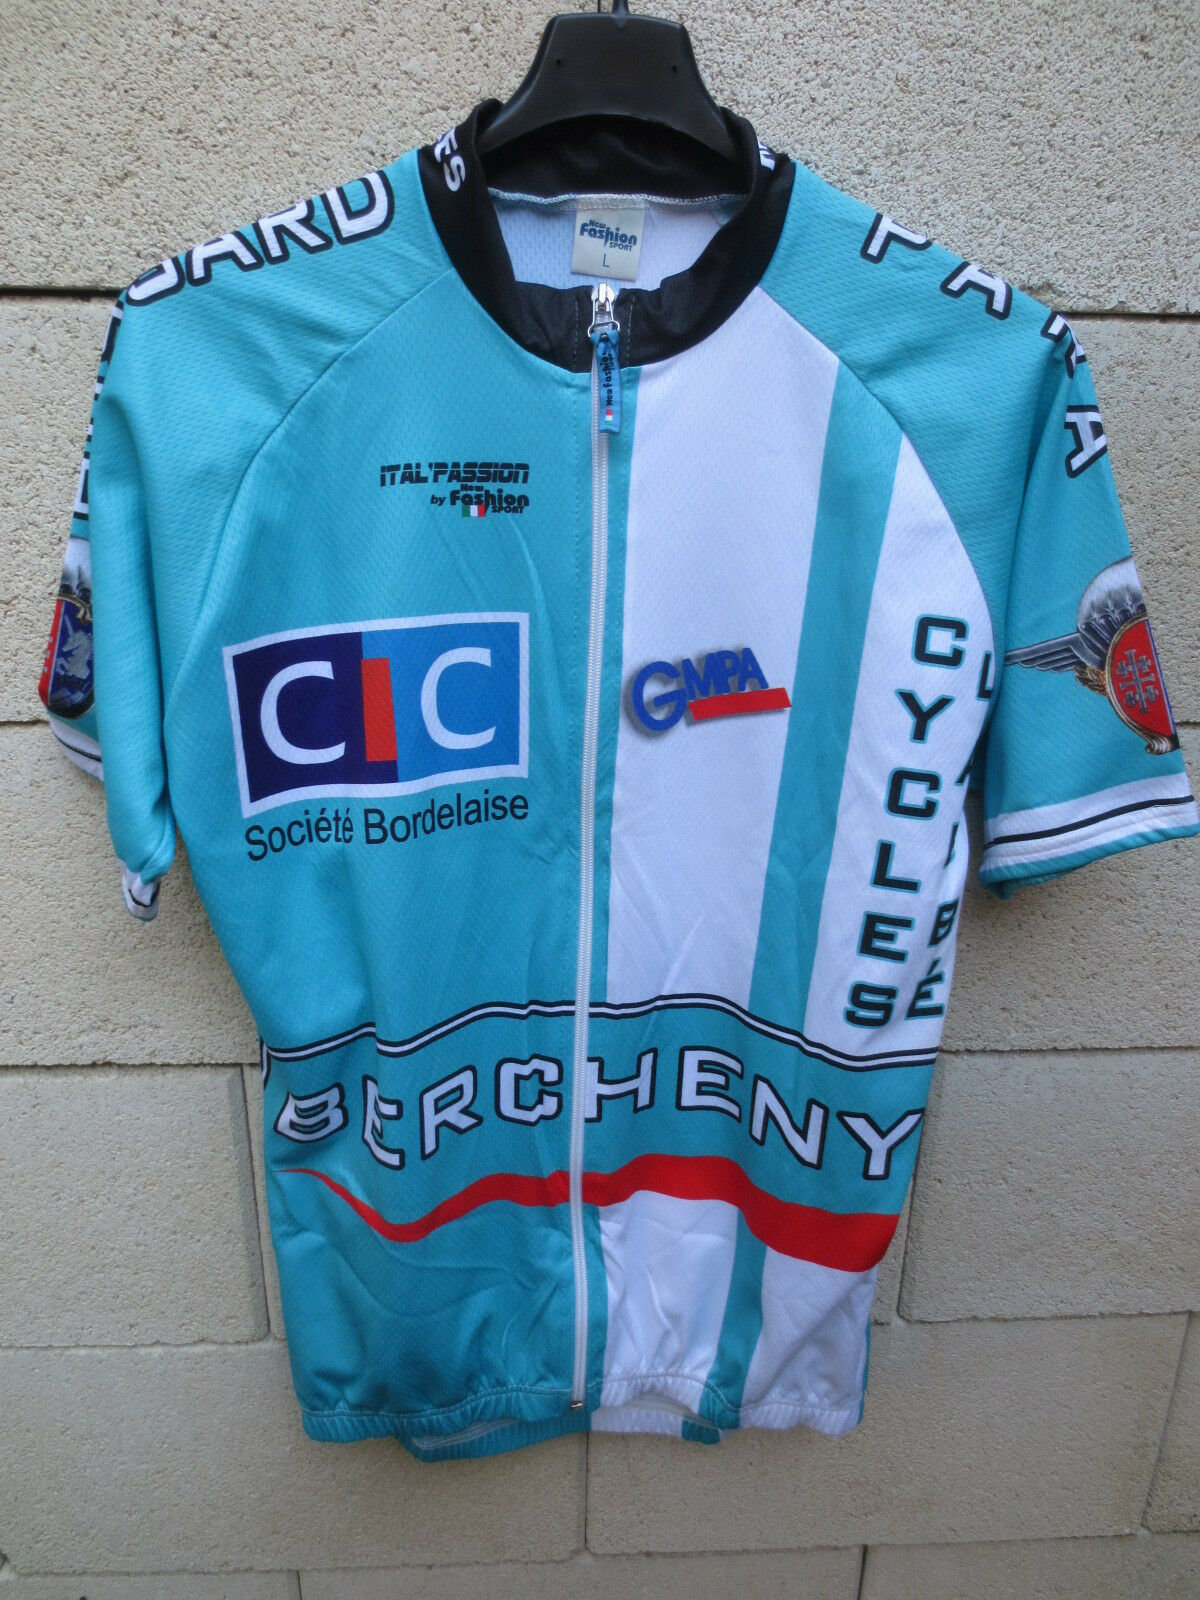 Maillot cycliste HUSSARD PARA TARBES Ital'Passion blue ciel collection L 1er RPH